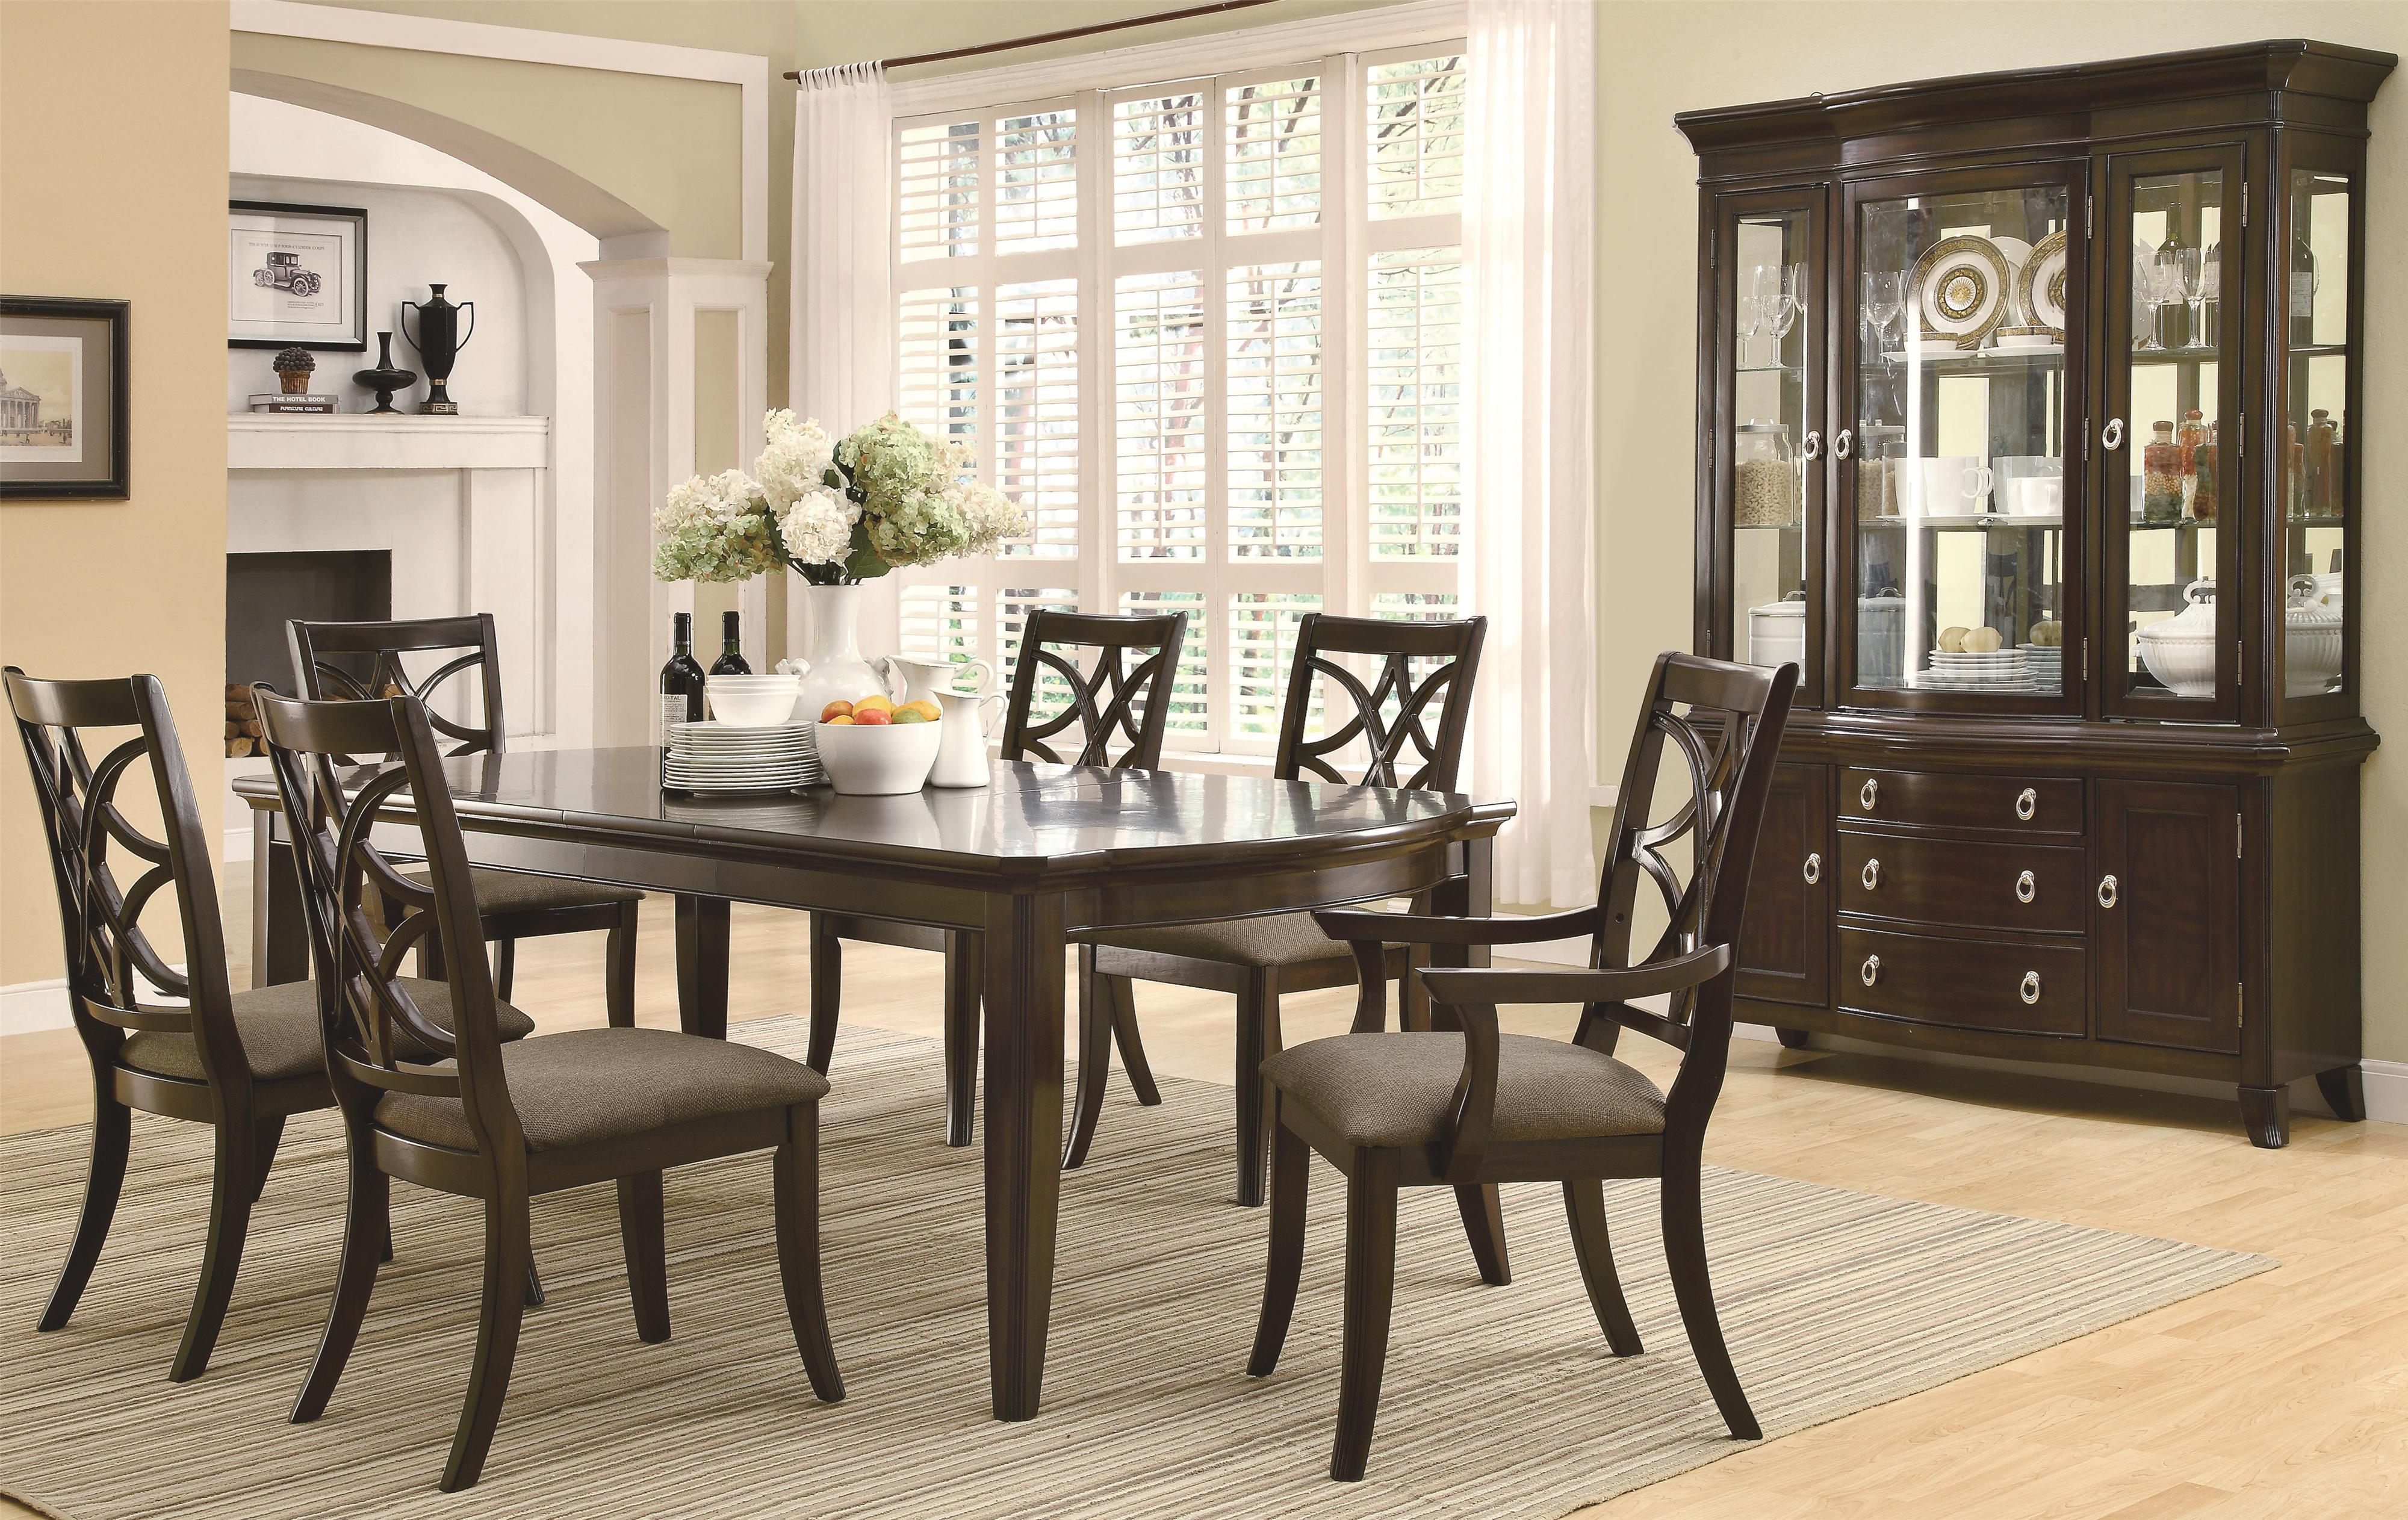 Coaster Meredith Formal Dining Room Group - Item Number: 103530 Dining Room Group 1